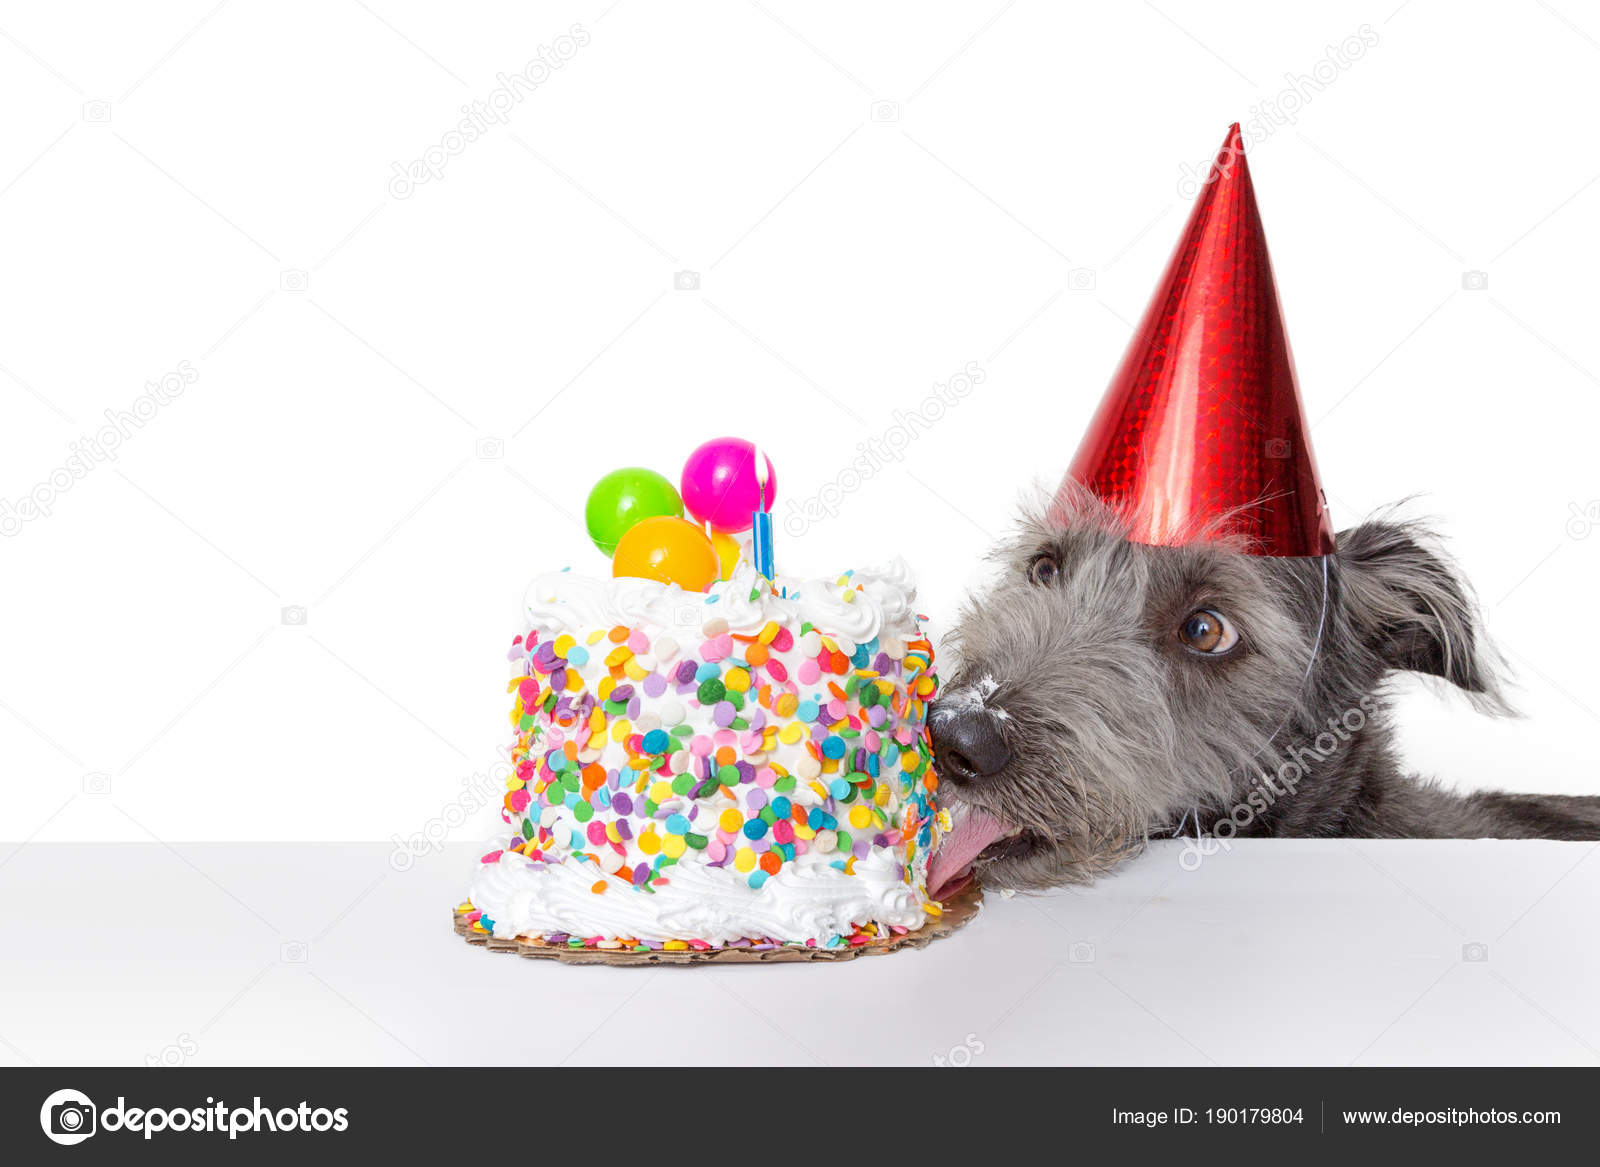 Funny Photo Dog Wearing Party Hat While Licking Frosting Birthday